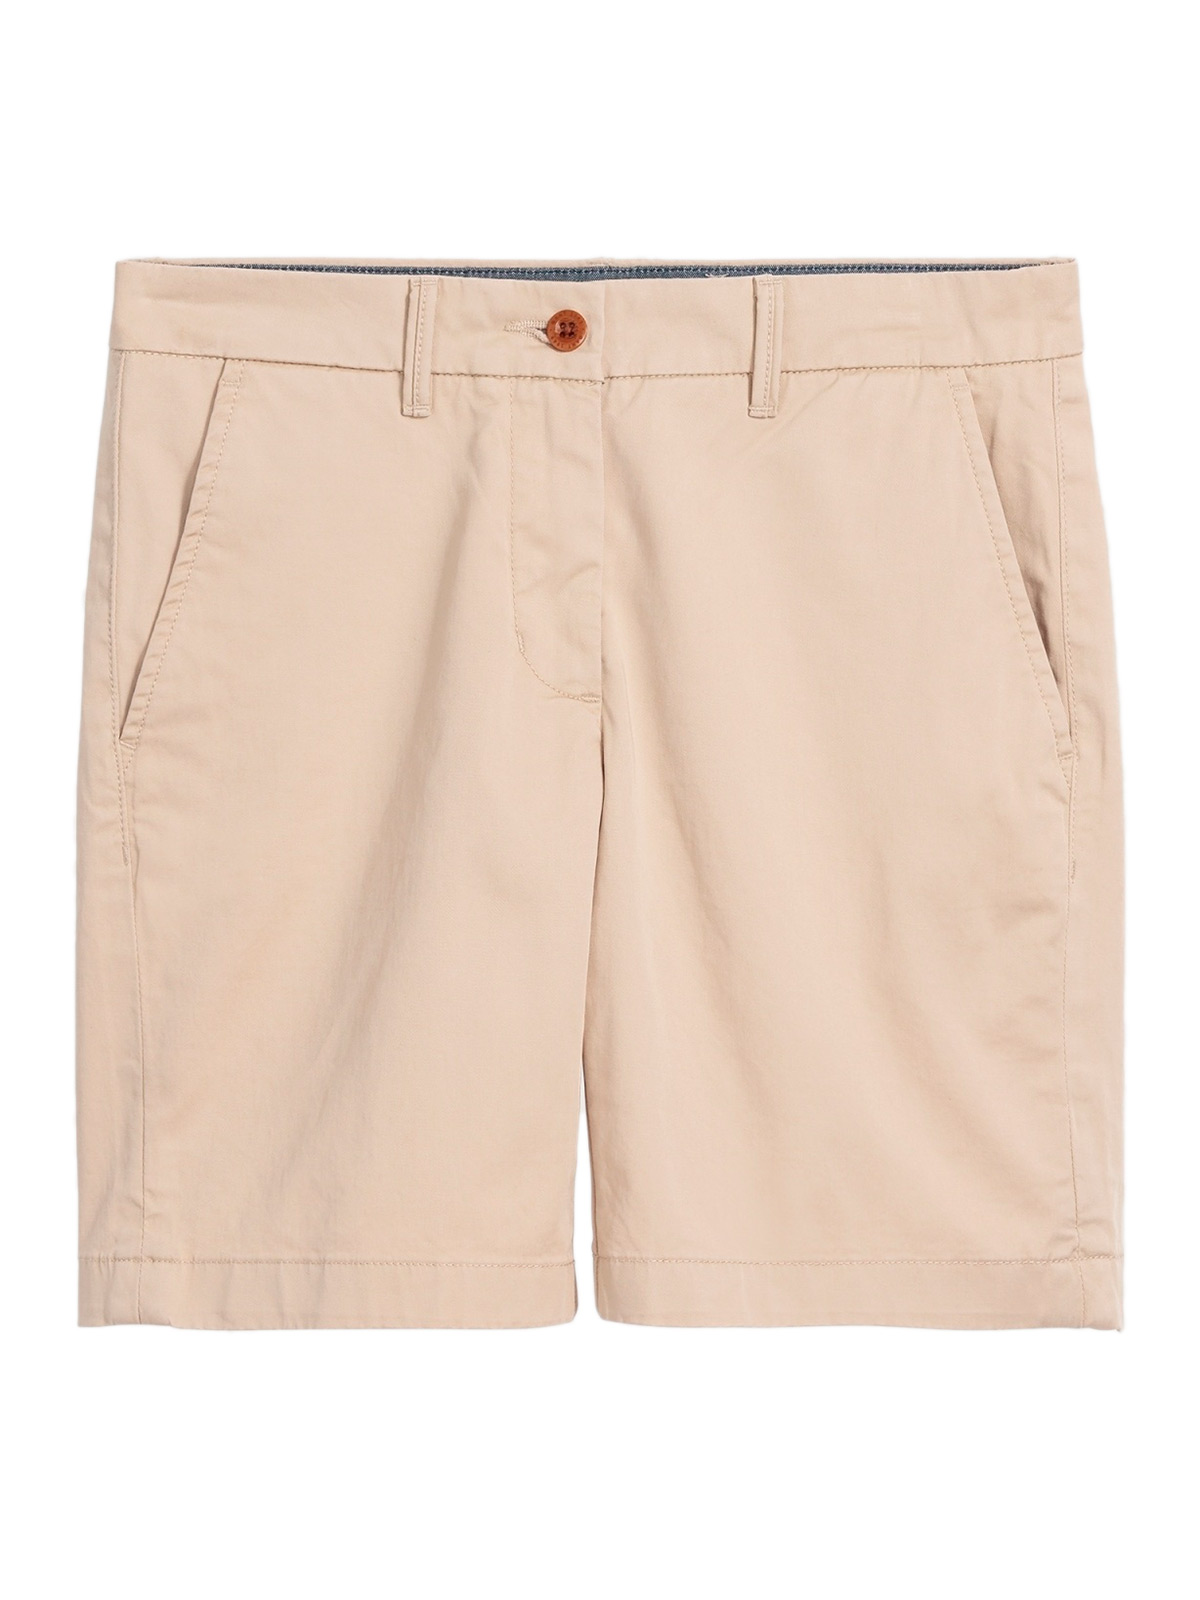 Picture of GANT | Bermuda O1. CLASSIC CHINO SHORTS